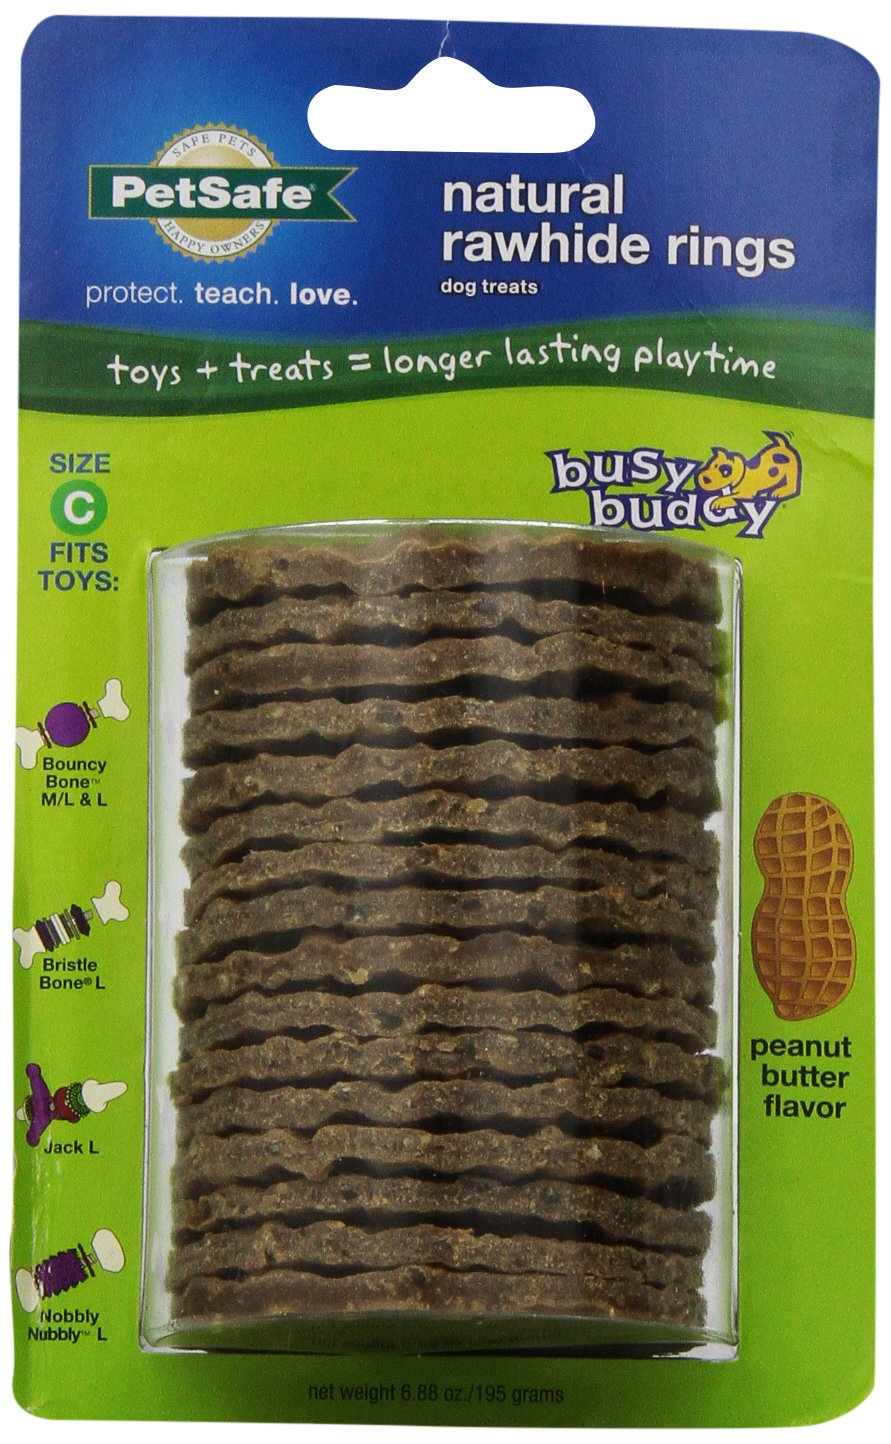 LARGE (SIZE C RINGS) PetSafe Busy Buddy Refill Ring Dog Treats for select Busy Buddy Dog Toys, Peanut Butter Flavored Natural Rawhide, Size C